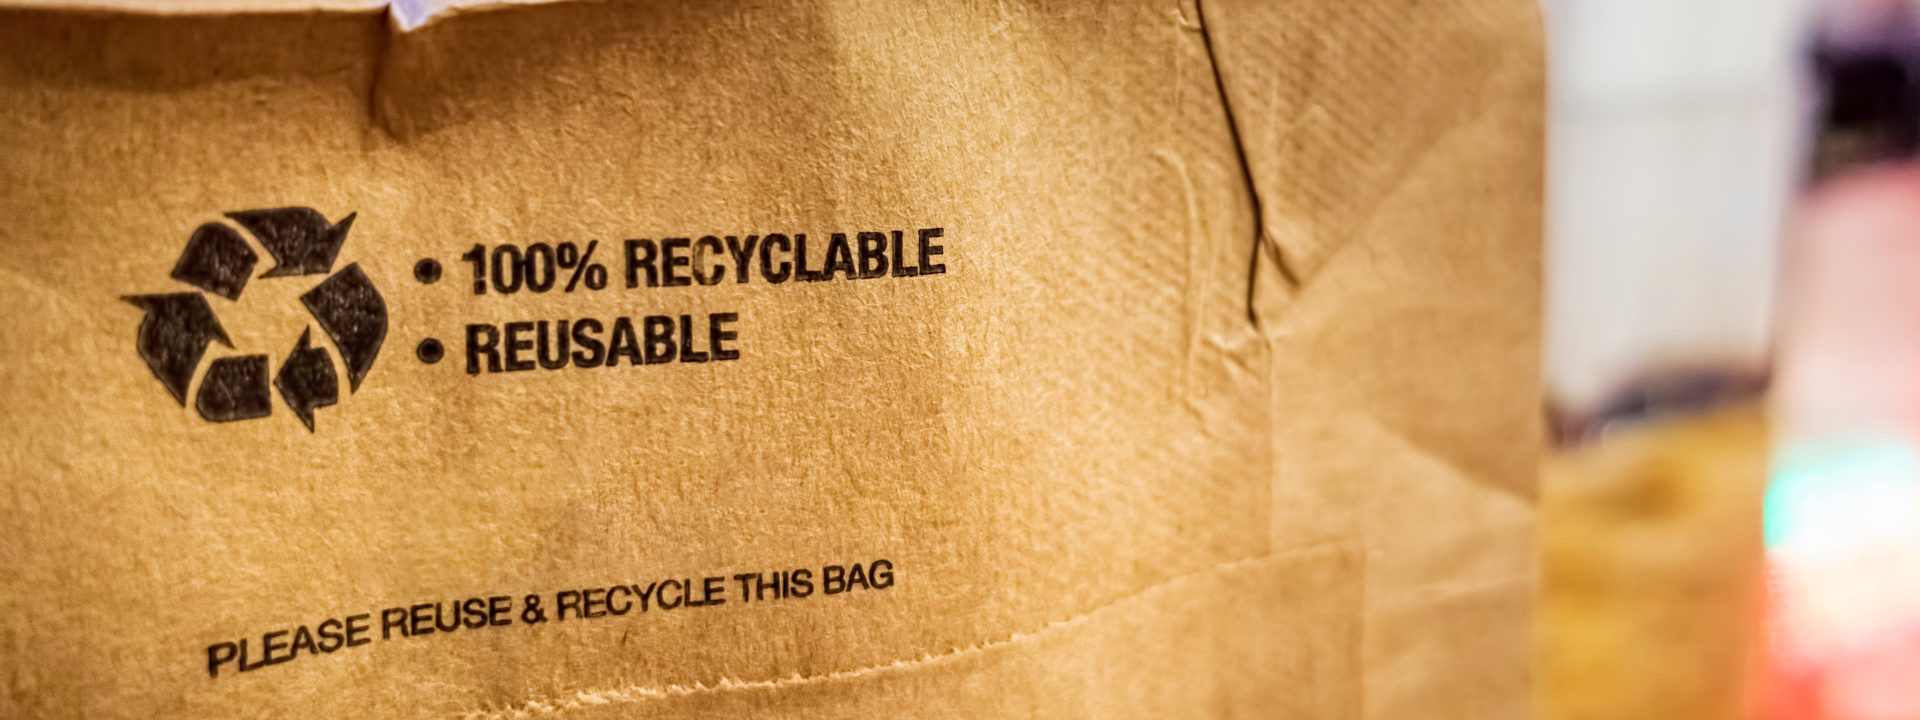 Brown paper bag that is 100% recyclable and reusable on a counter. A printed plea for user to recycle and reuse this bag as a form of packaging.; Shutterstock ID 1506701819; Purchase Order: 20210409; Job: EF HR; Client/Licensee: HR online content